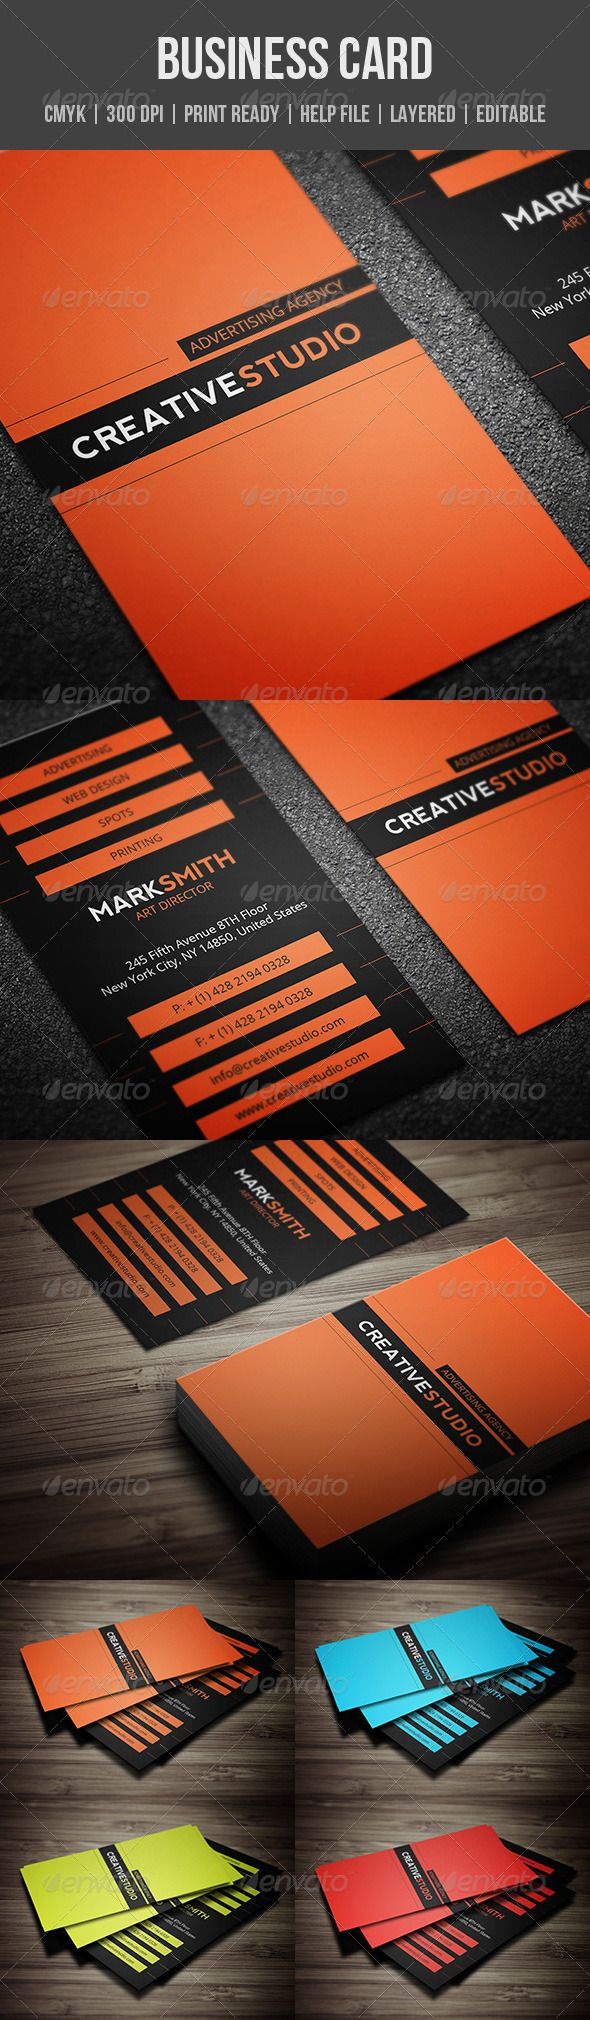 Creative Business Card  #GraphicRiver         Features:   CMYK colors  300 DPI  Layered PSD files  Customizable and Editable  2×3.5 (2.25×3.75 with bleeds + Trim Mark)  Print Ready Format  Vertical Business Card   Included:   2 PSD files (front and back), 4 color versions (orange, blue, green, red)  1 PDF Help file   Fonts:   Nevis here  Open Sans here  If you have any question please contact me via my